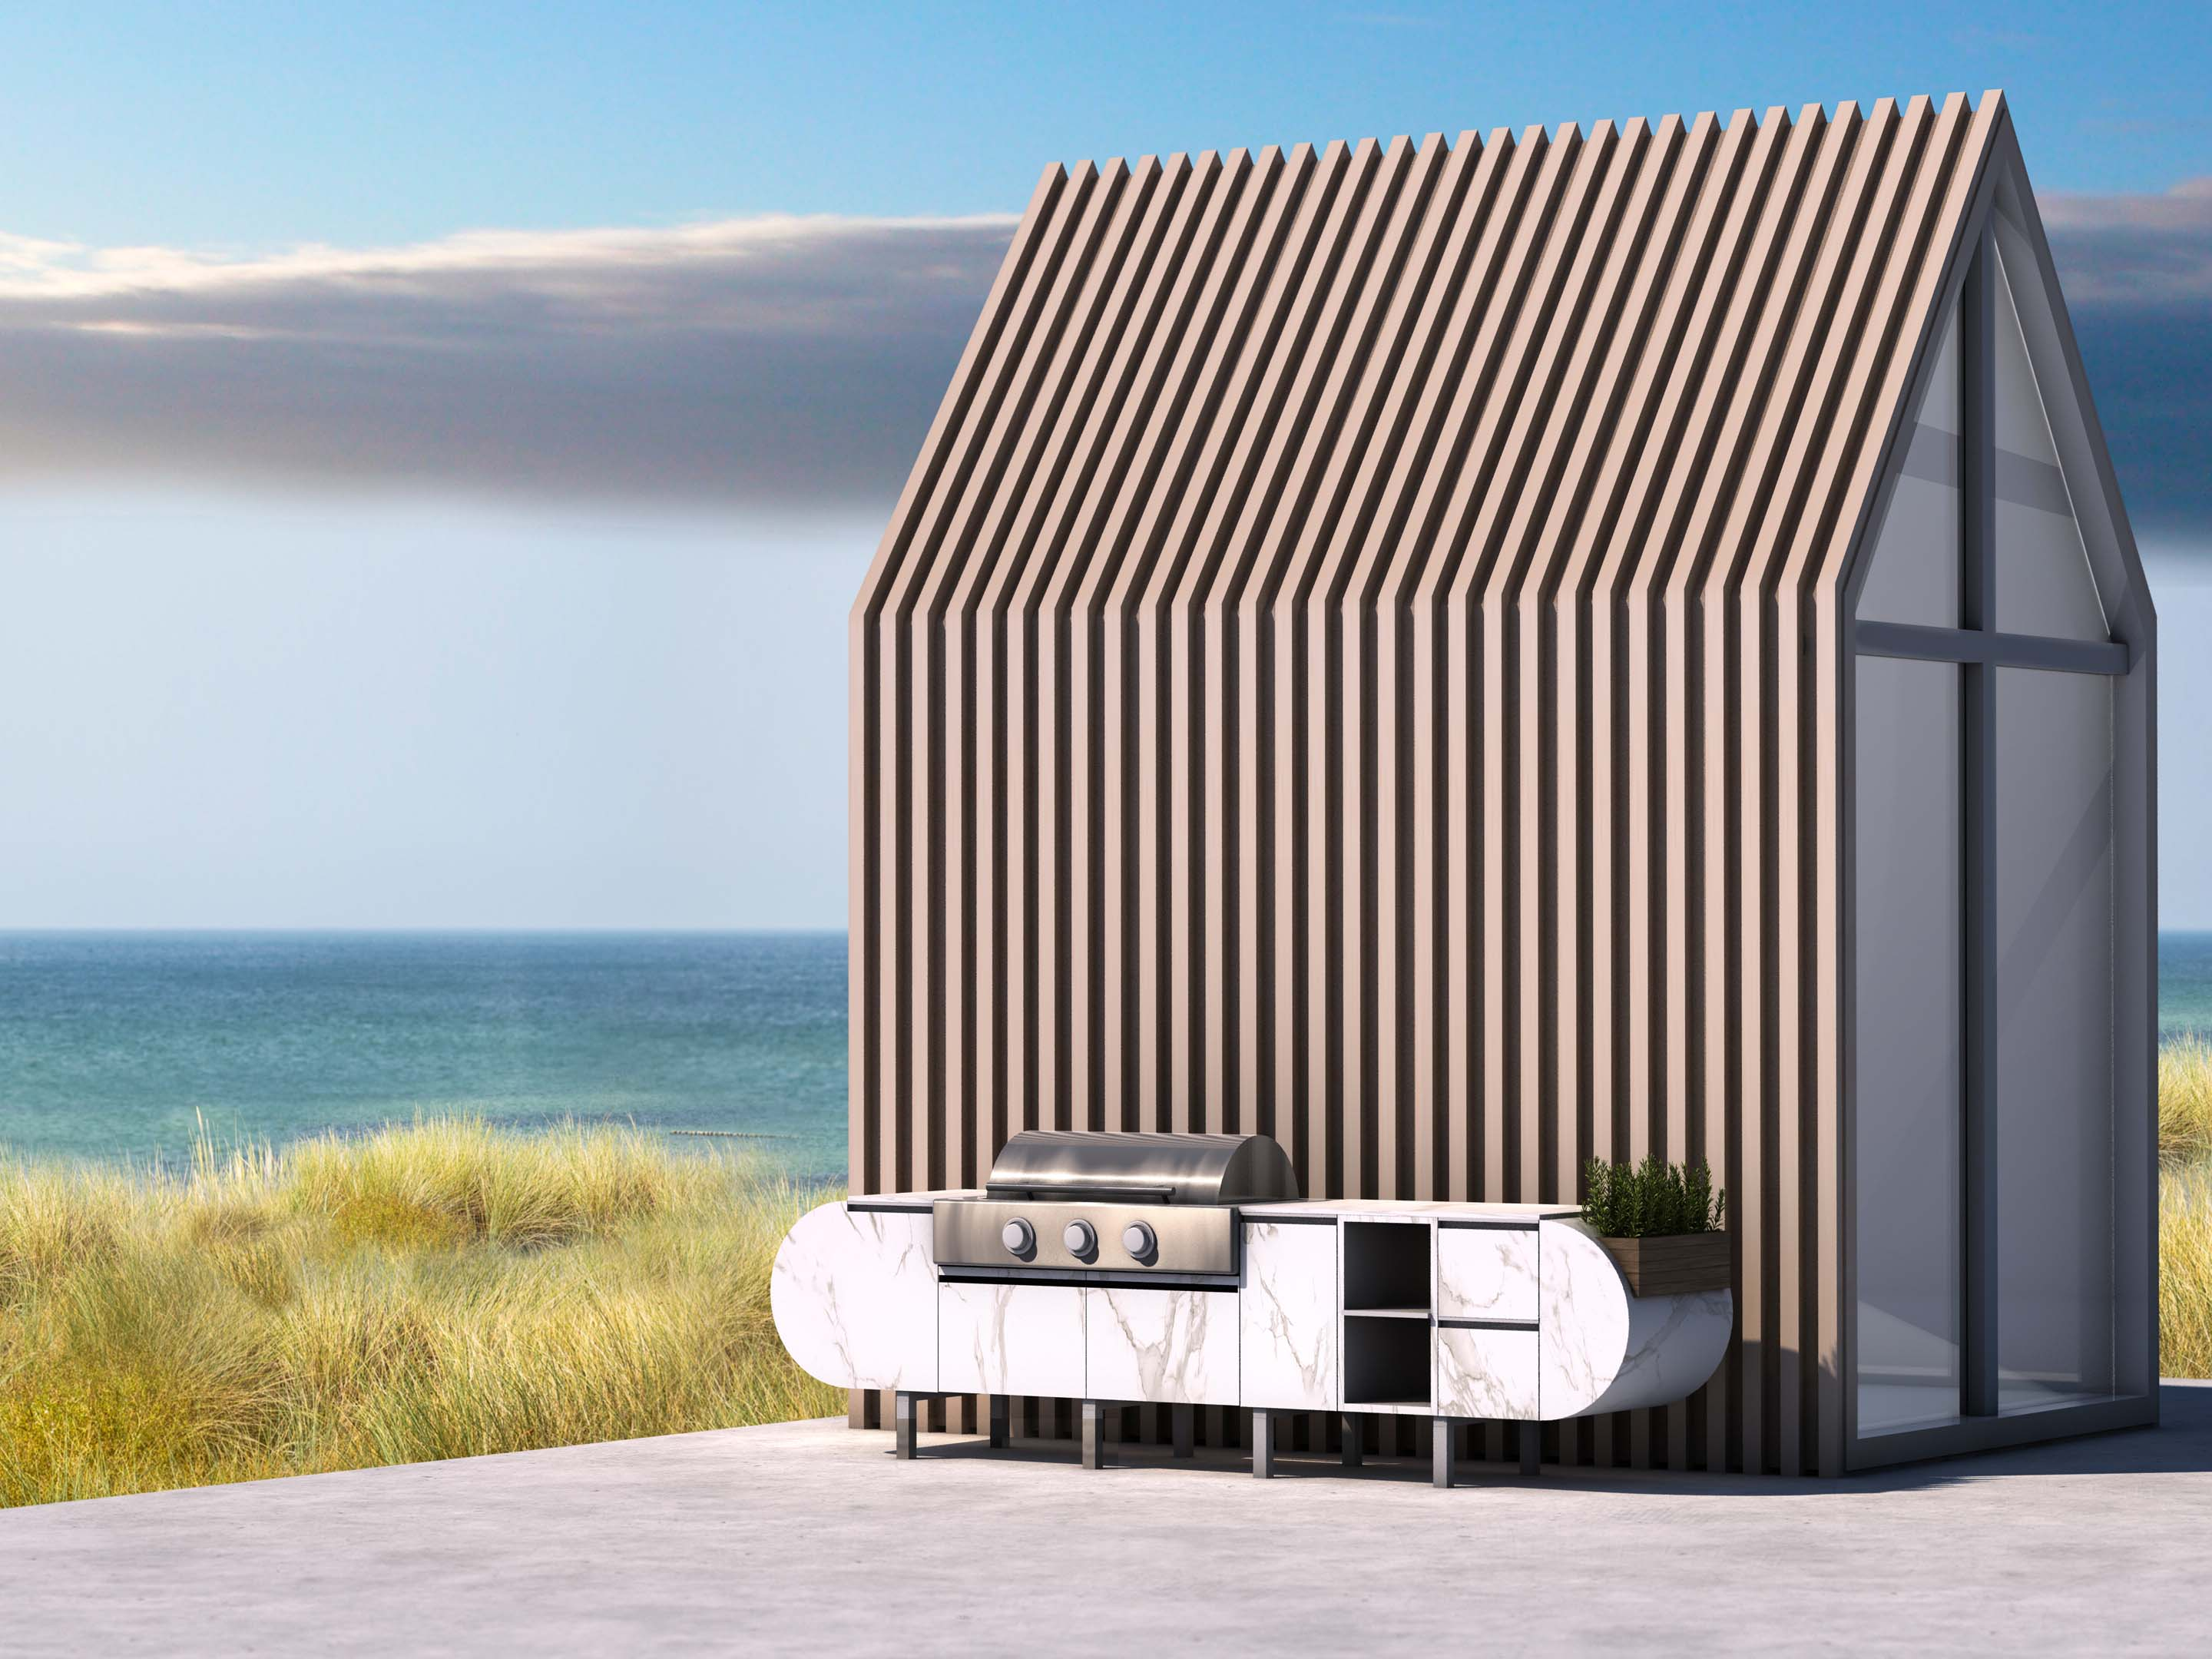 Whether the outdoor space is small or large, the ASA-D2 modular kitchen marries function and stylish form.